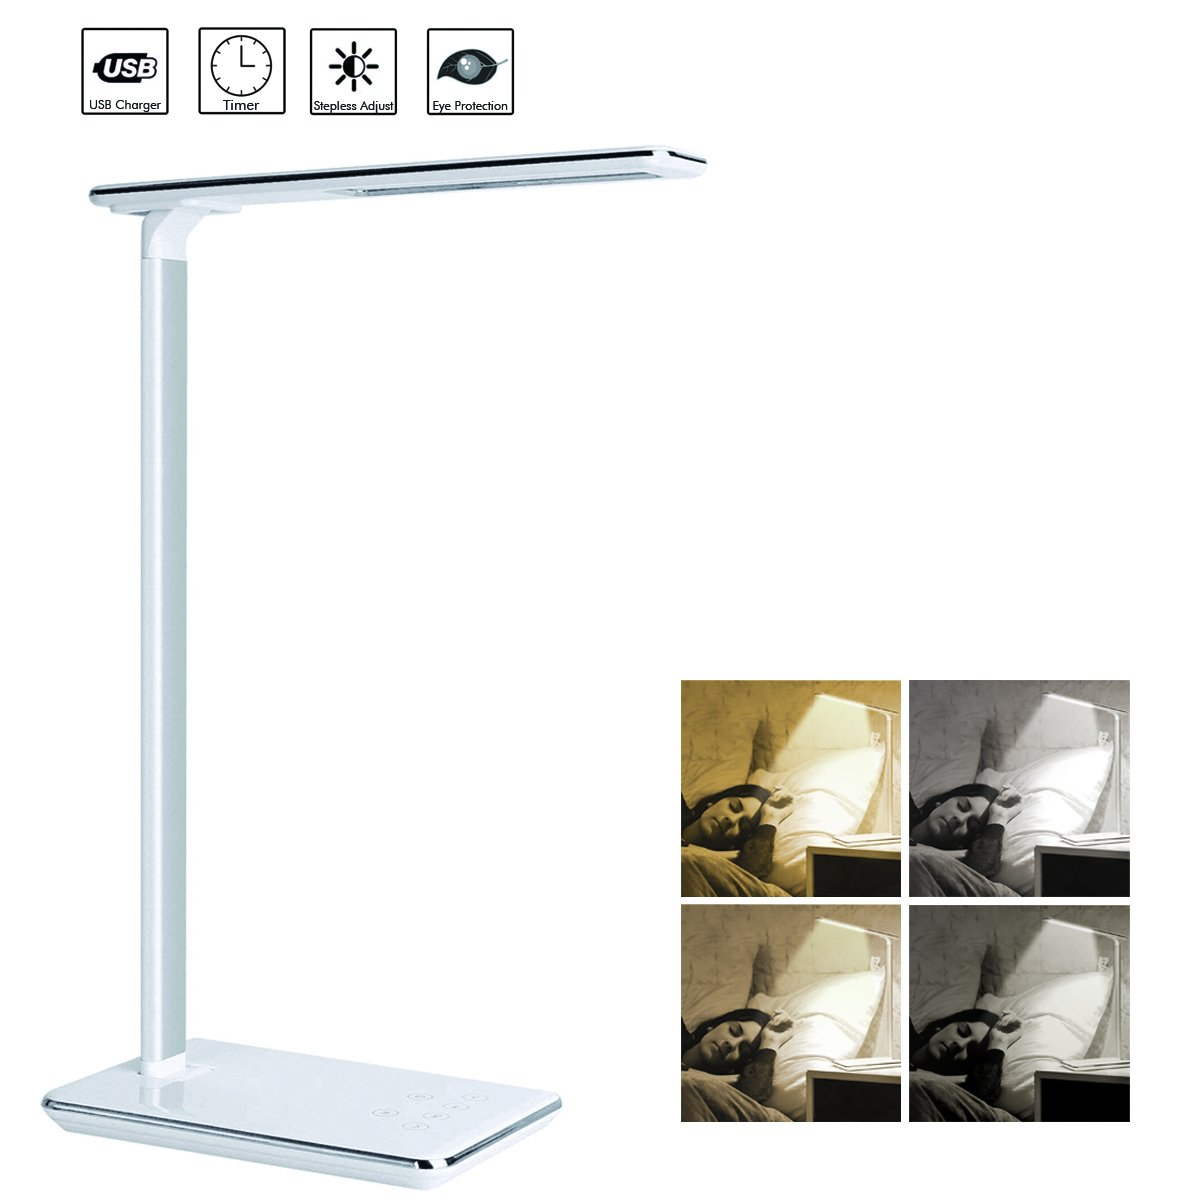 Kimfly LED Desk Lamp, Dimmable Desk Lamp with 4 Lighting Modes, Touch Control Table Lamp, Office Lamp with USB Charging Port, Auto Shut-Off Timer Reading Lamp